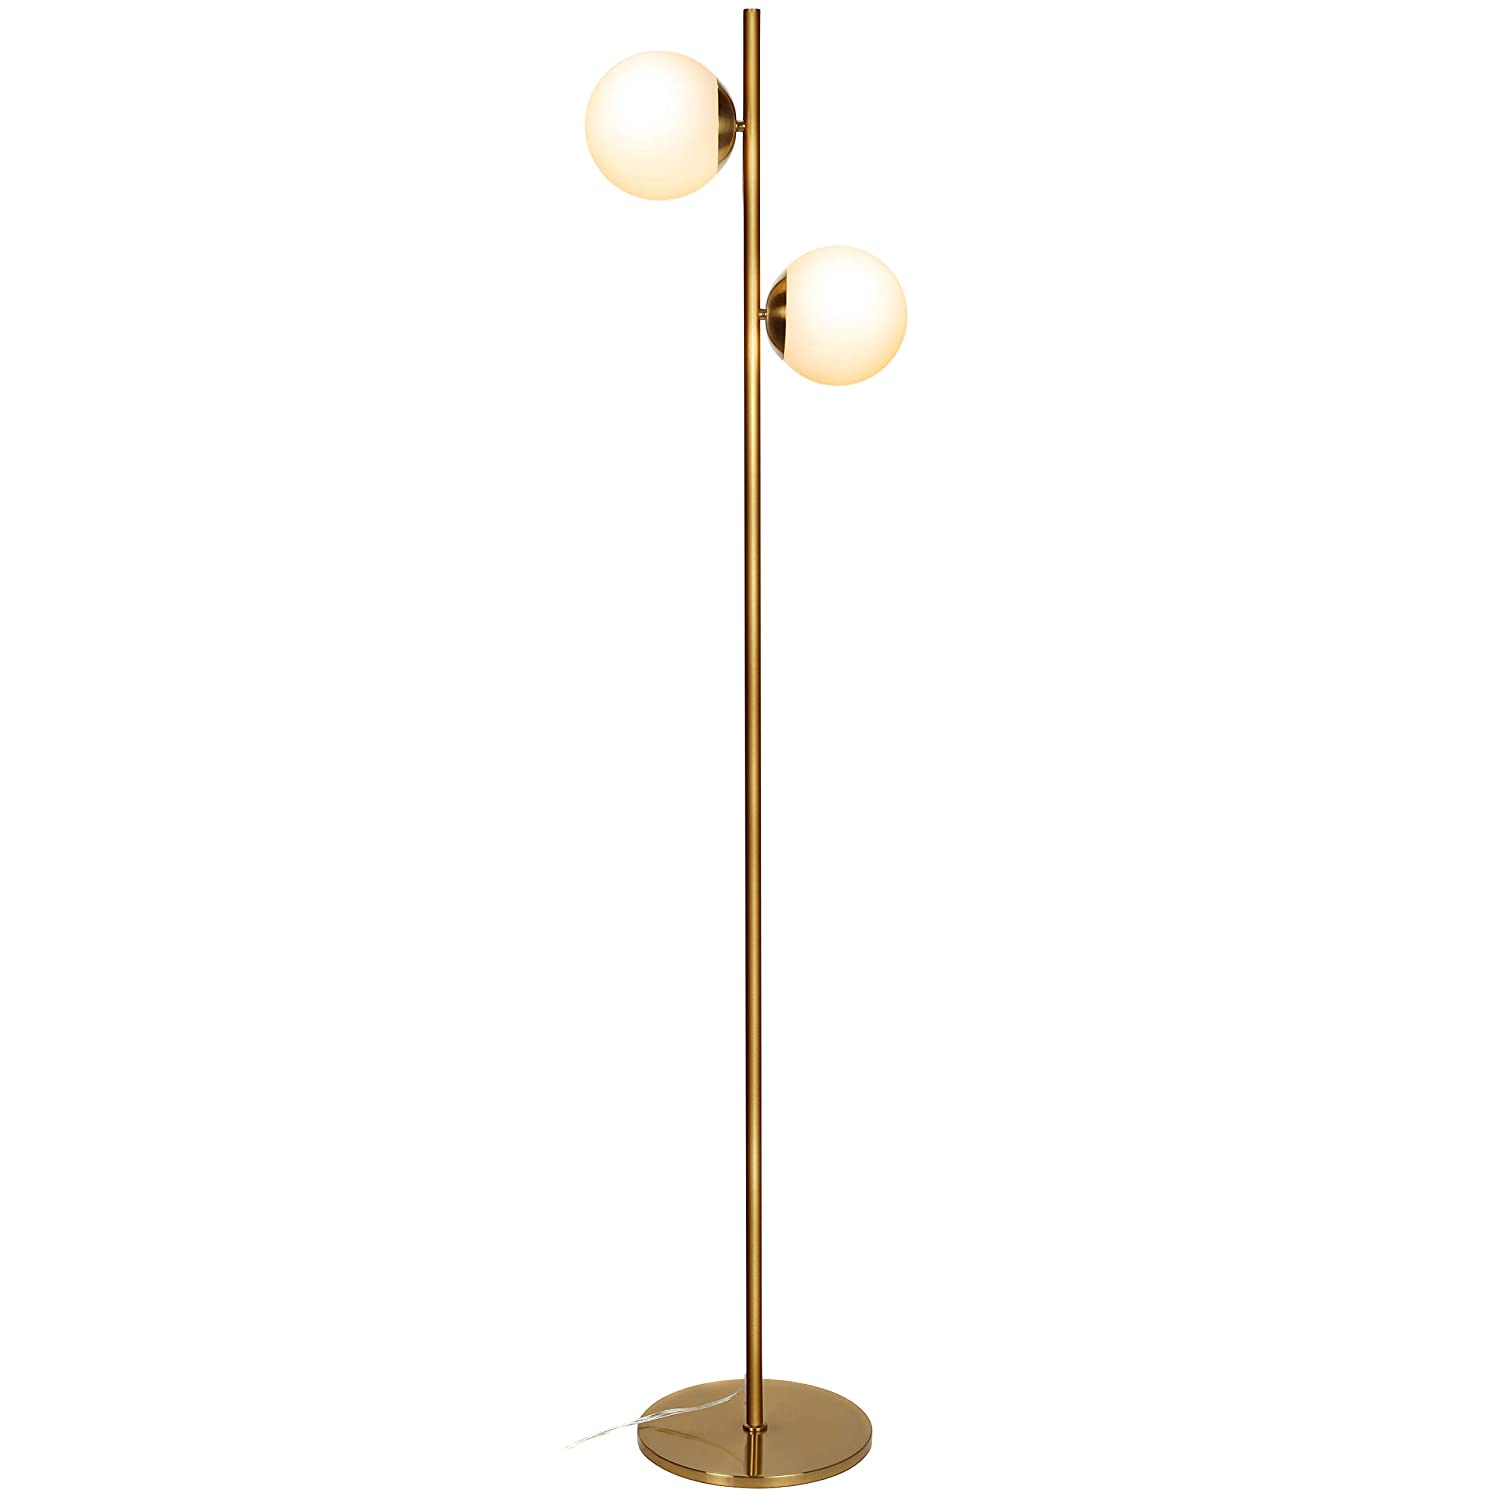 Brightech Sphere LED Floor Lamp– Contemporary Modern Frosted Glass Globe Lamp with Two Lights- Tall Pole Standing Uplight Lamp for Living Room, Den, Office, Bedroom- Bulbs Included- Antique Brass